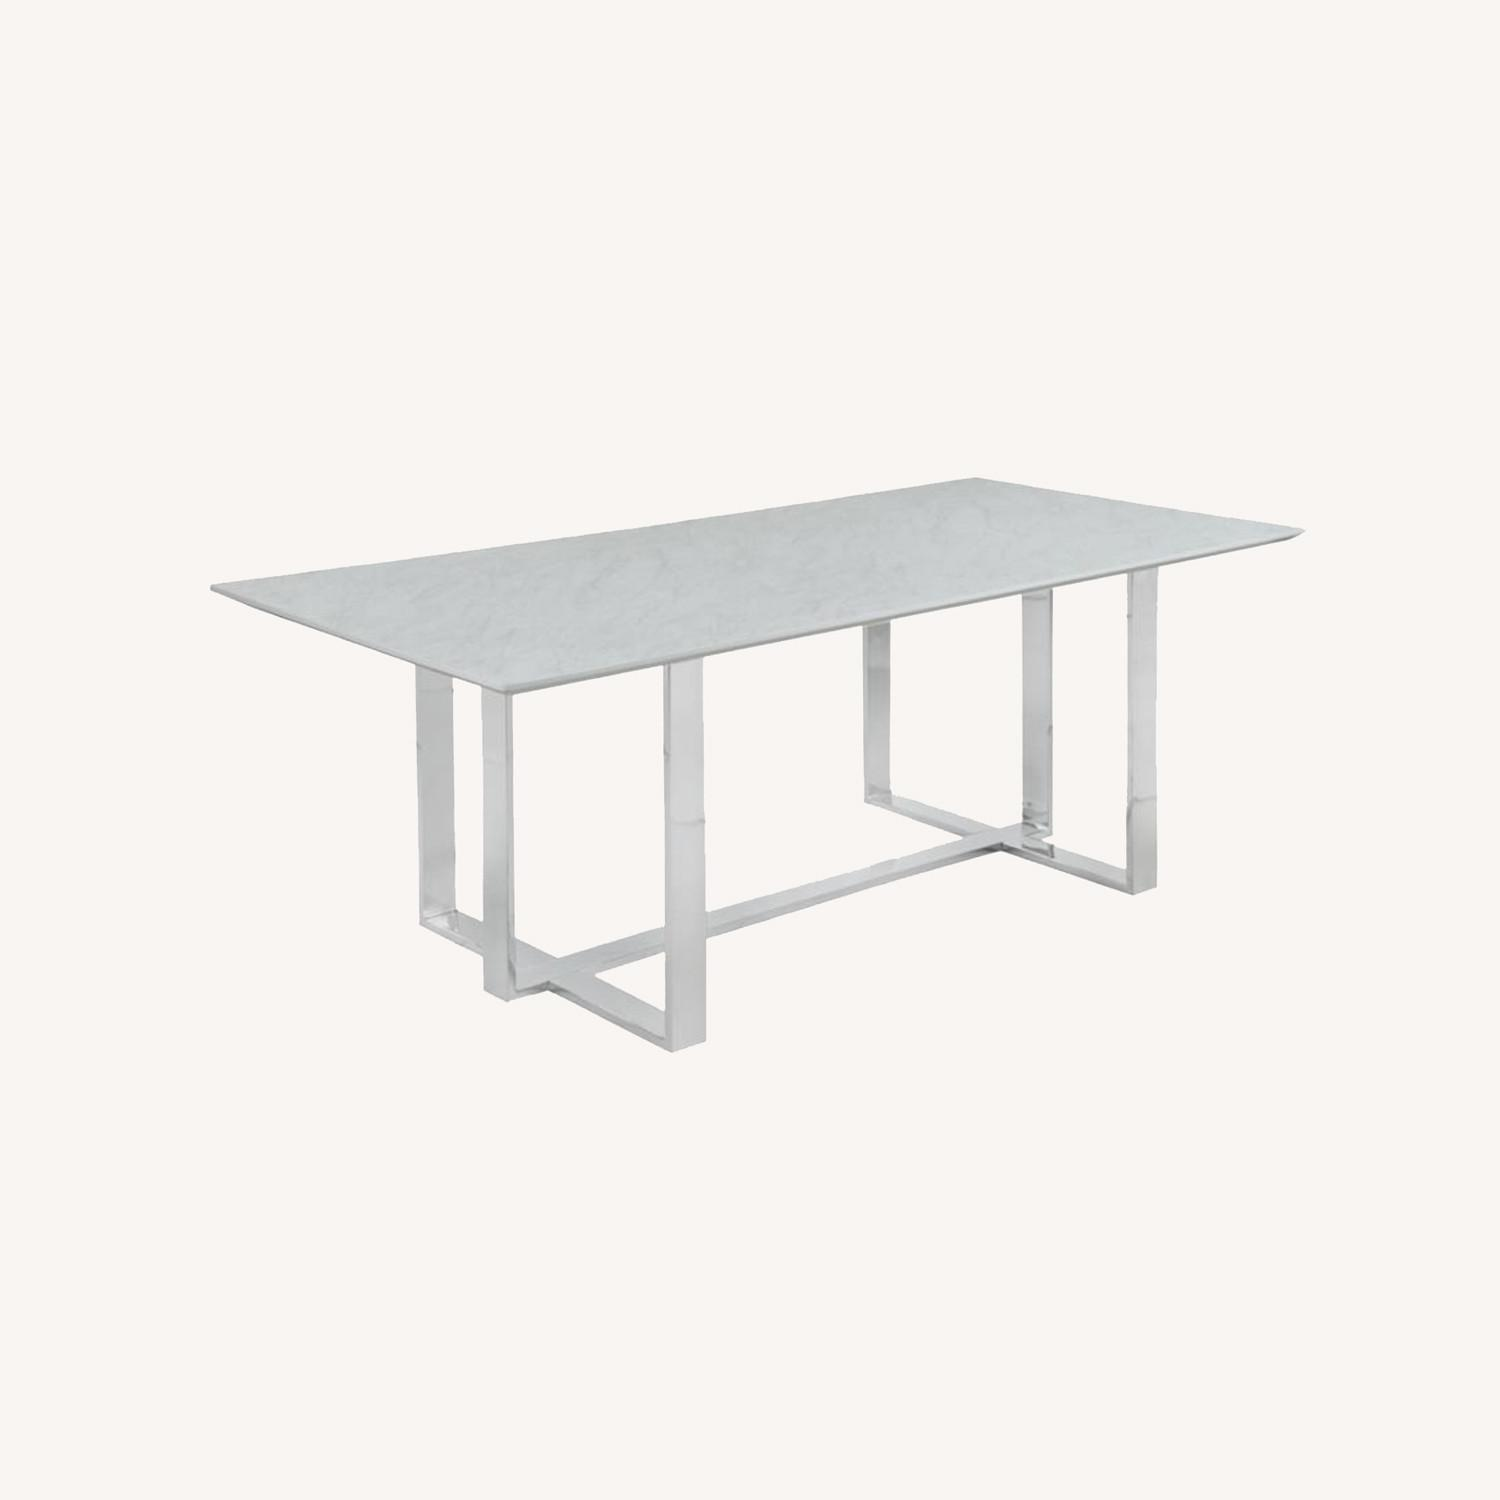 Dining Table In White Thick Tempered Glass Finish - image-7